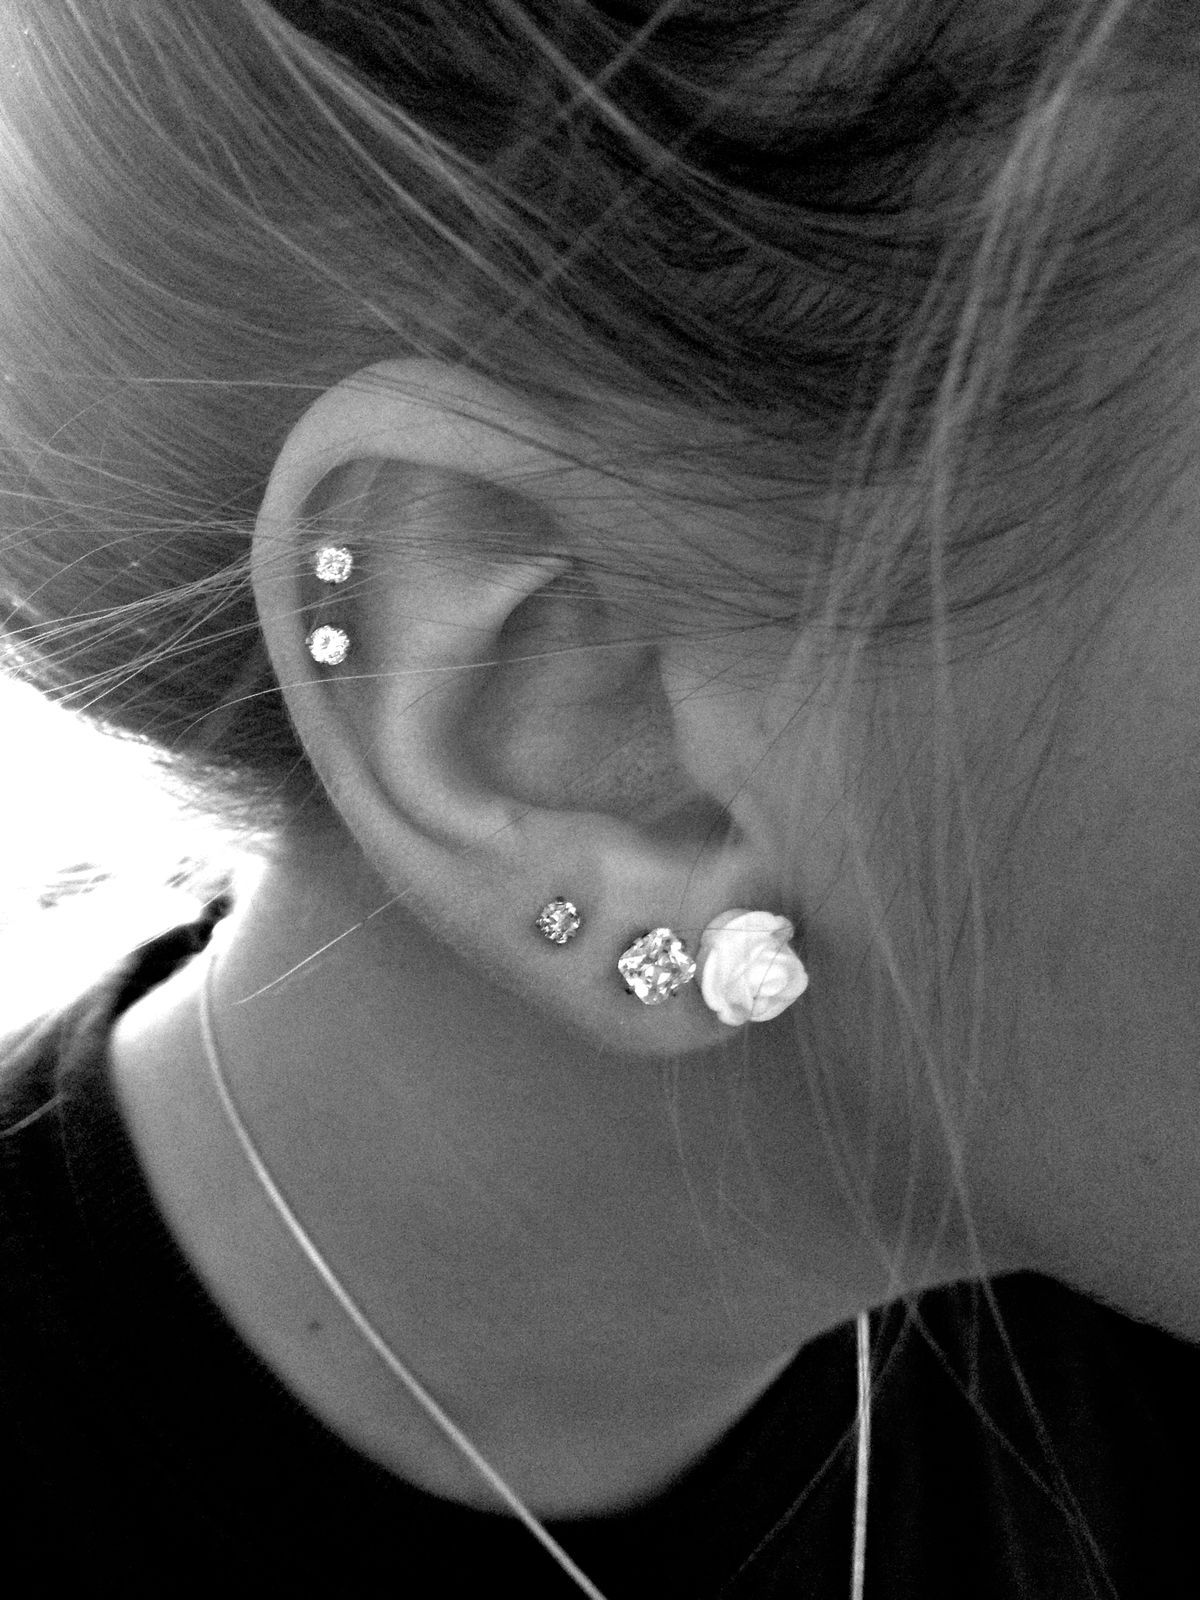 30 Cute And Different Ear Piercings 30 Cute and Different Ear Piercings Piercing c cartilage piercing